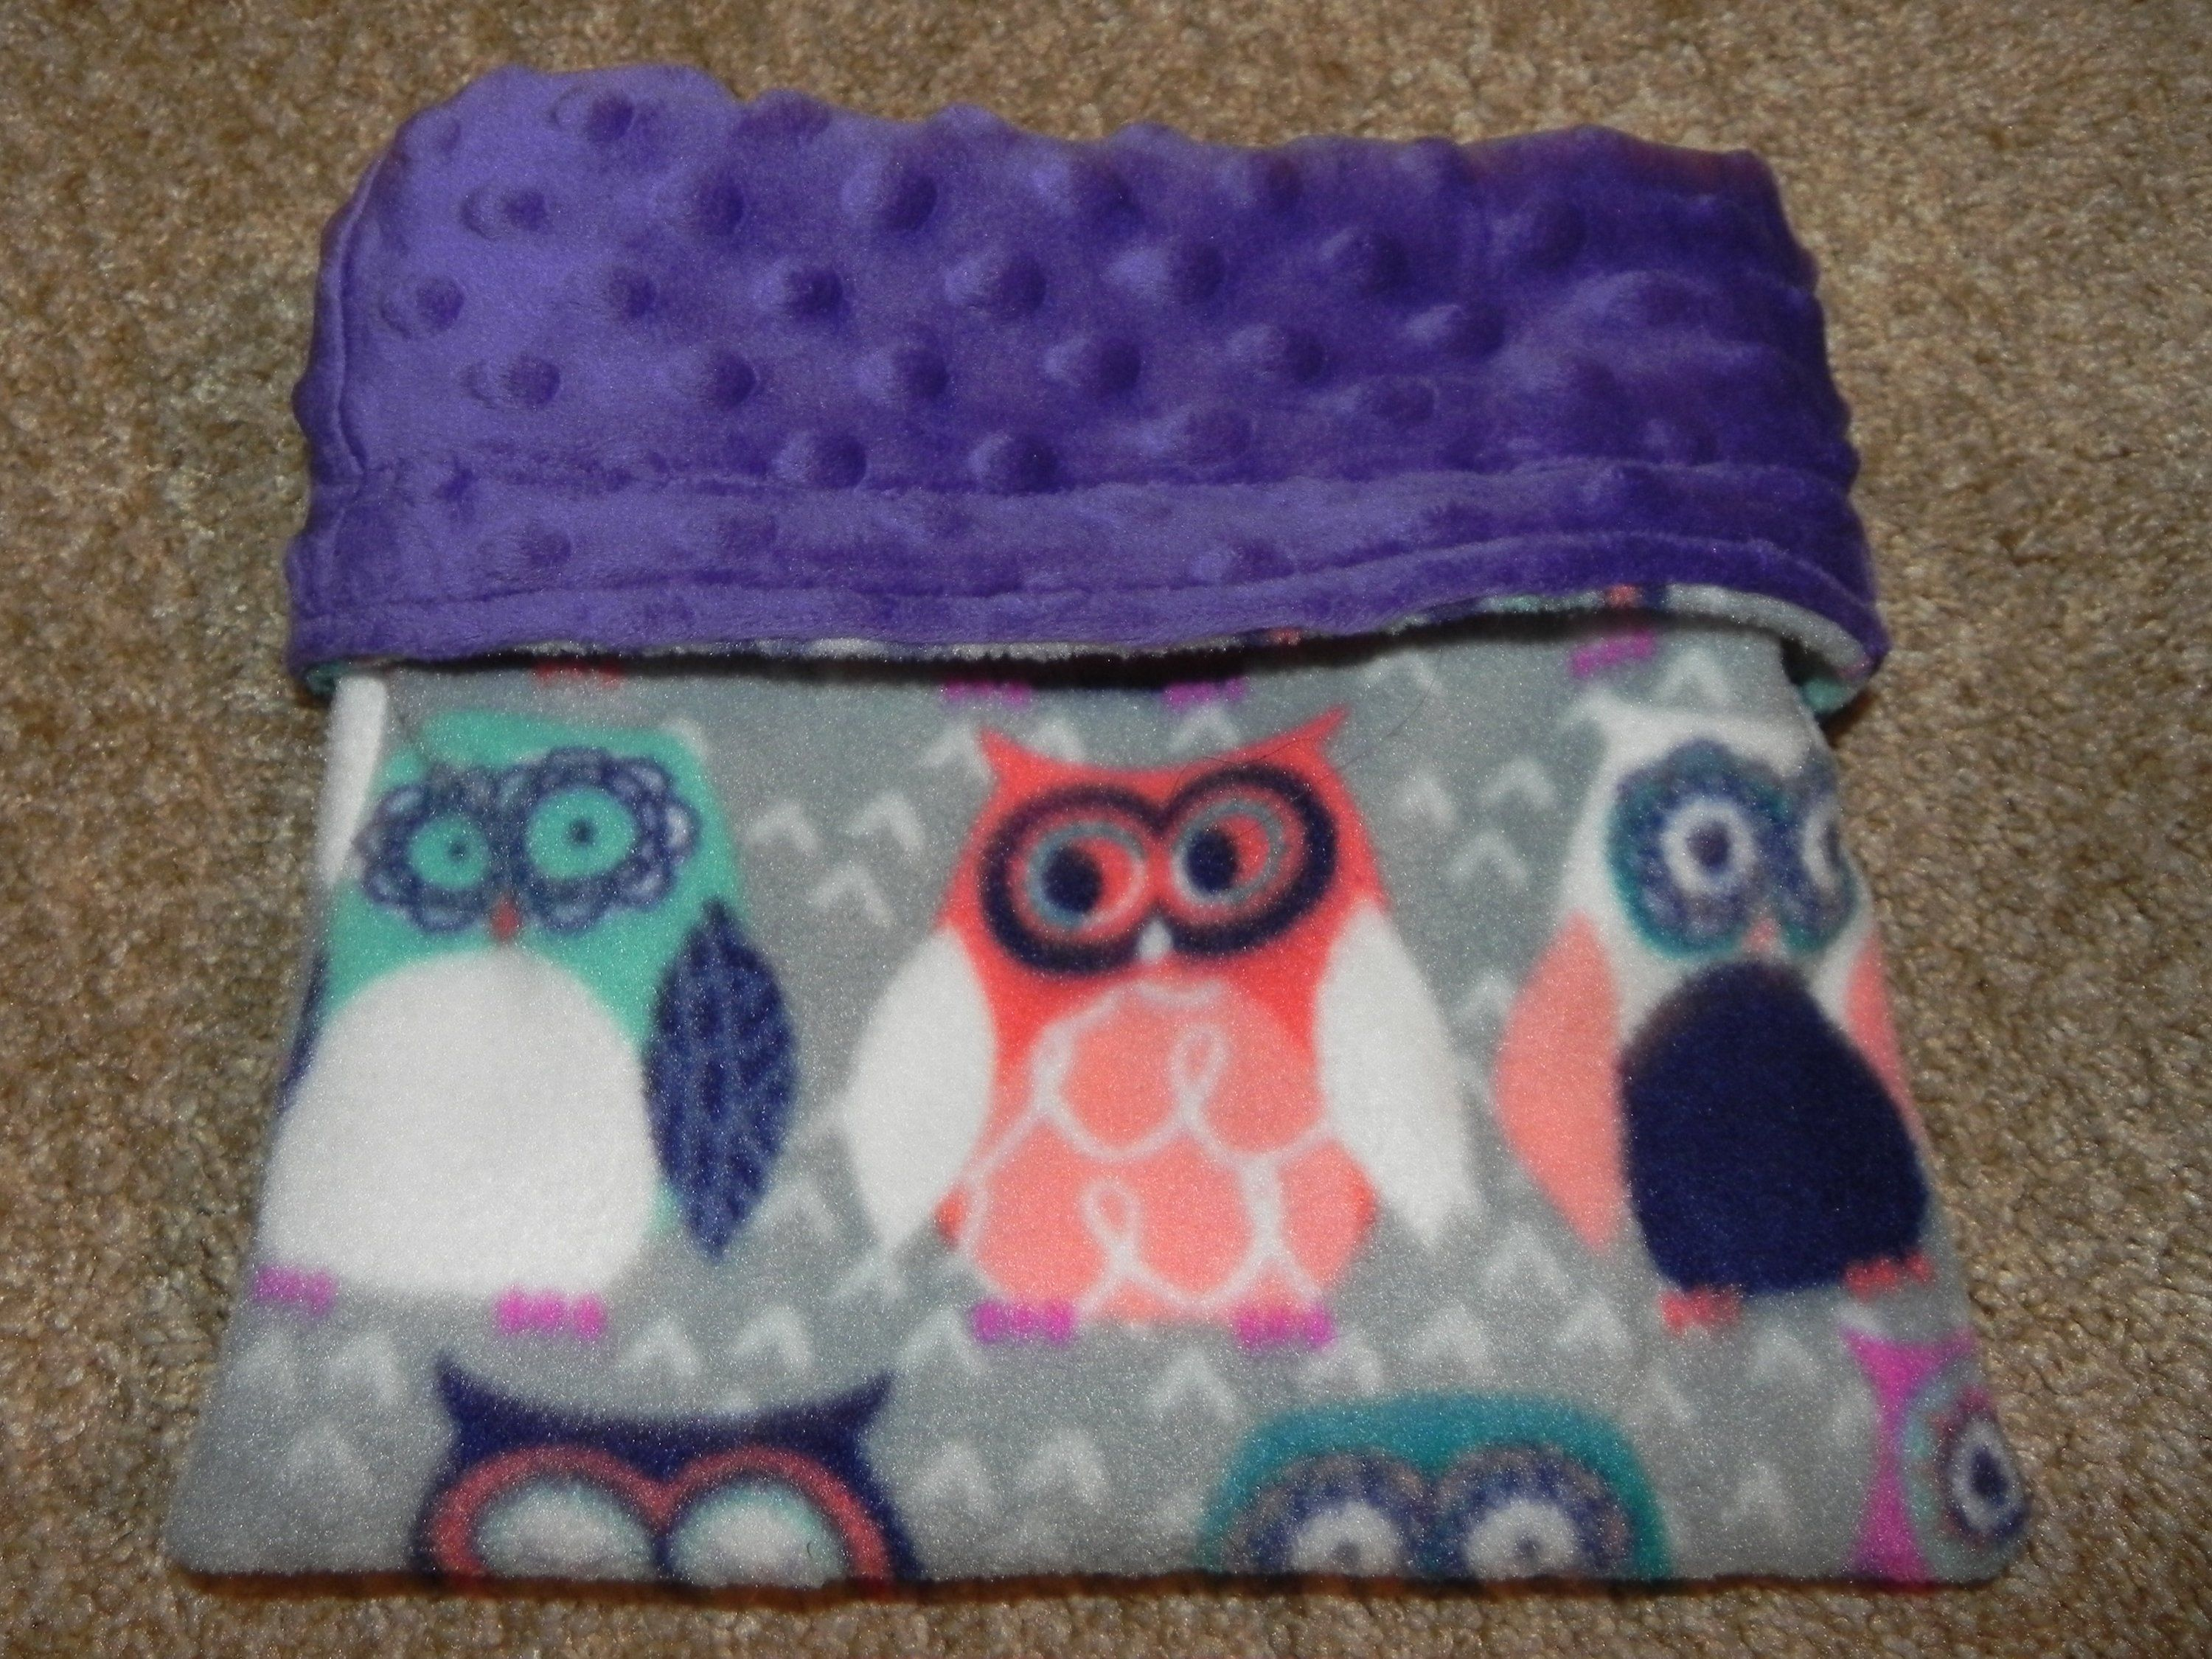 Pet snuggle sack sleep pouch reversible fleece pouch for your